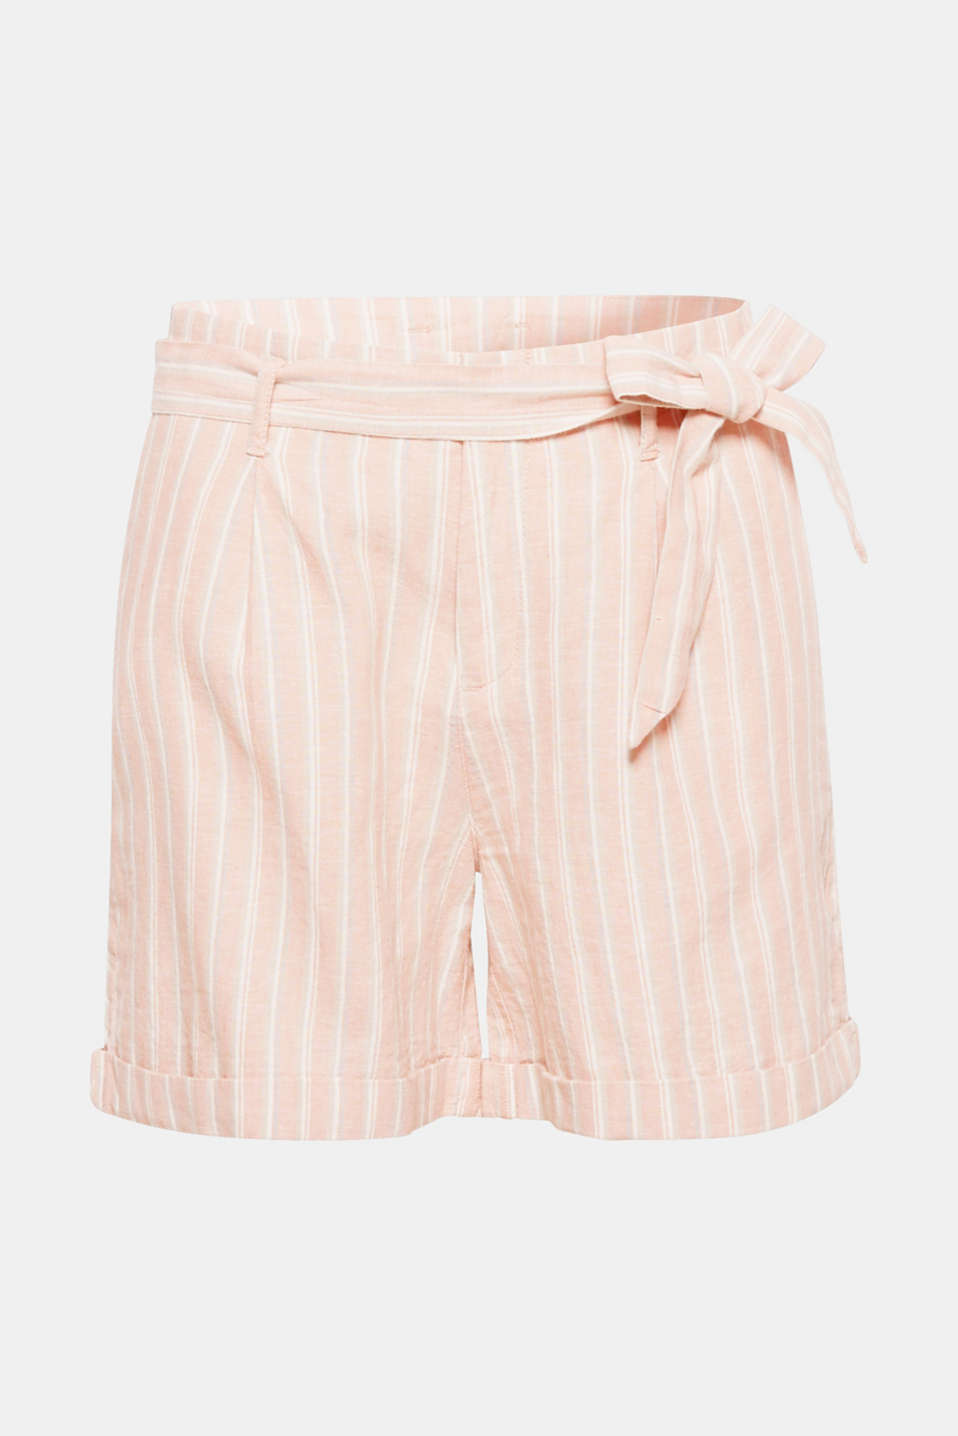 These striped shorts in pleasantly cooling blended linen are the perfect piece for staying comfortable on hotter days.